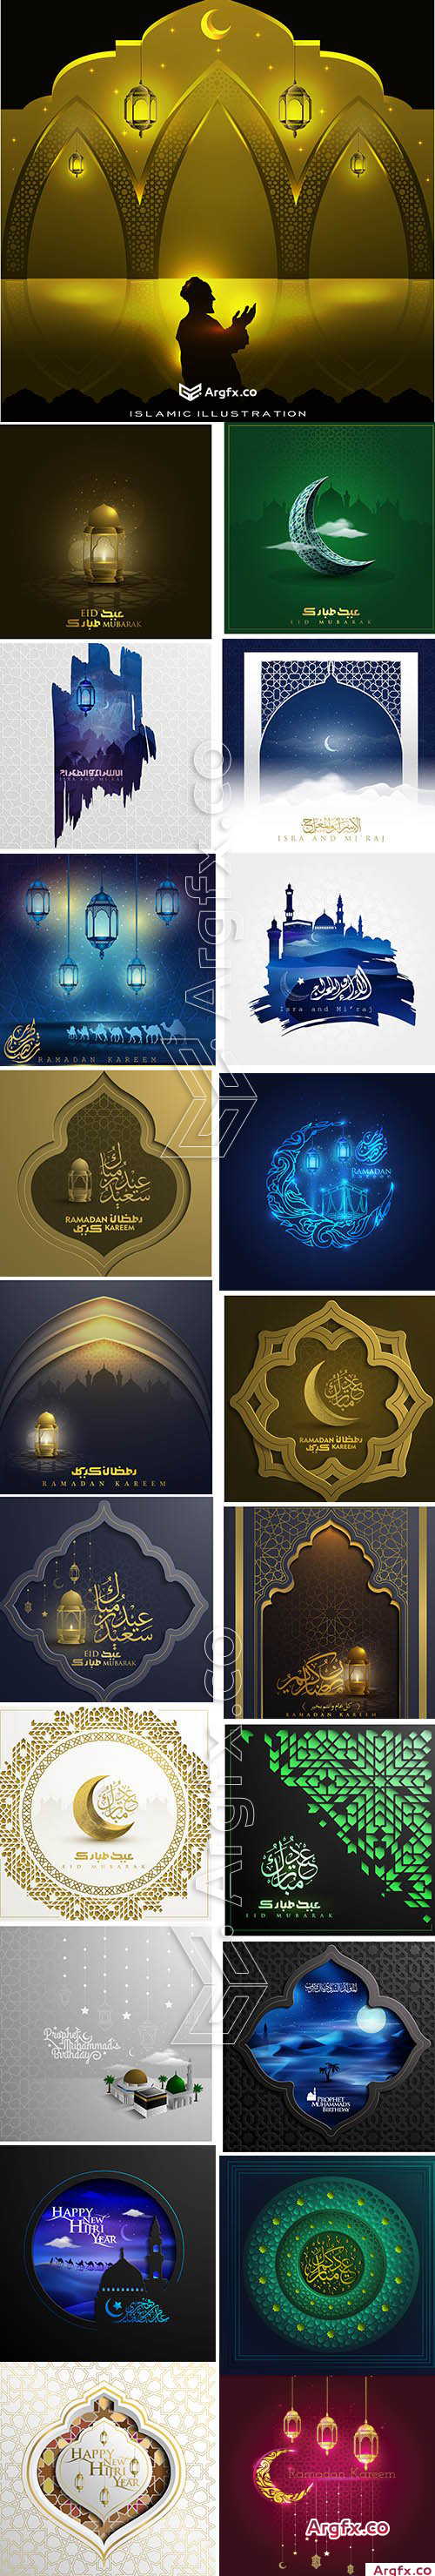 Greeting Islamic Illustration Design with Arabic Calligraphy